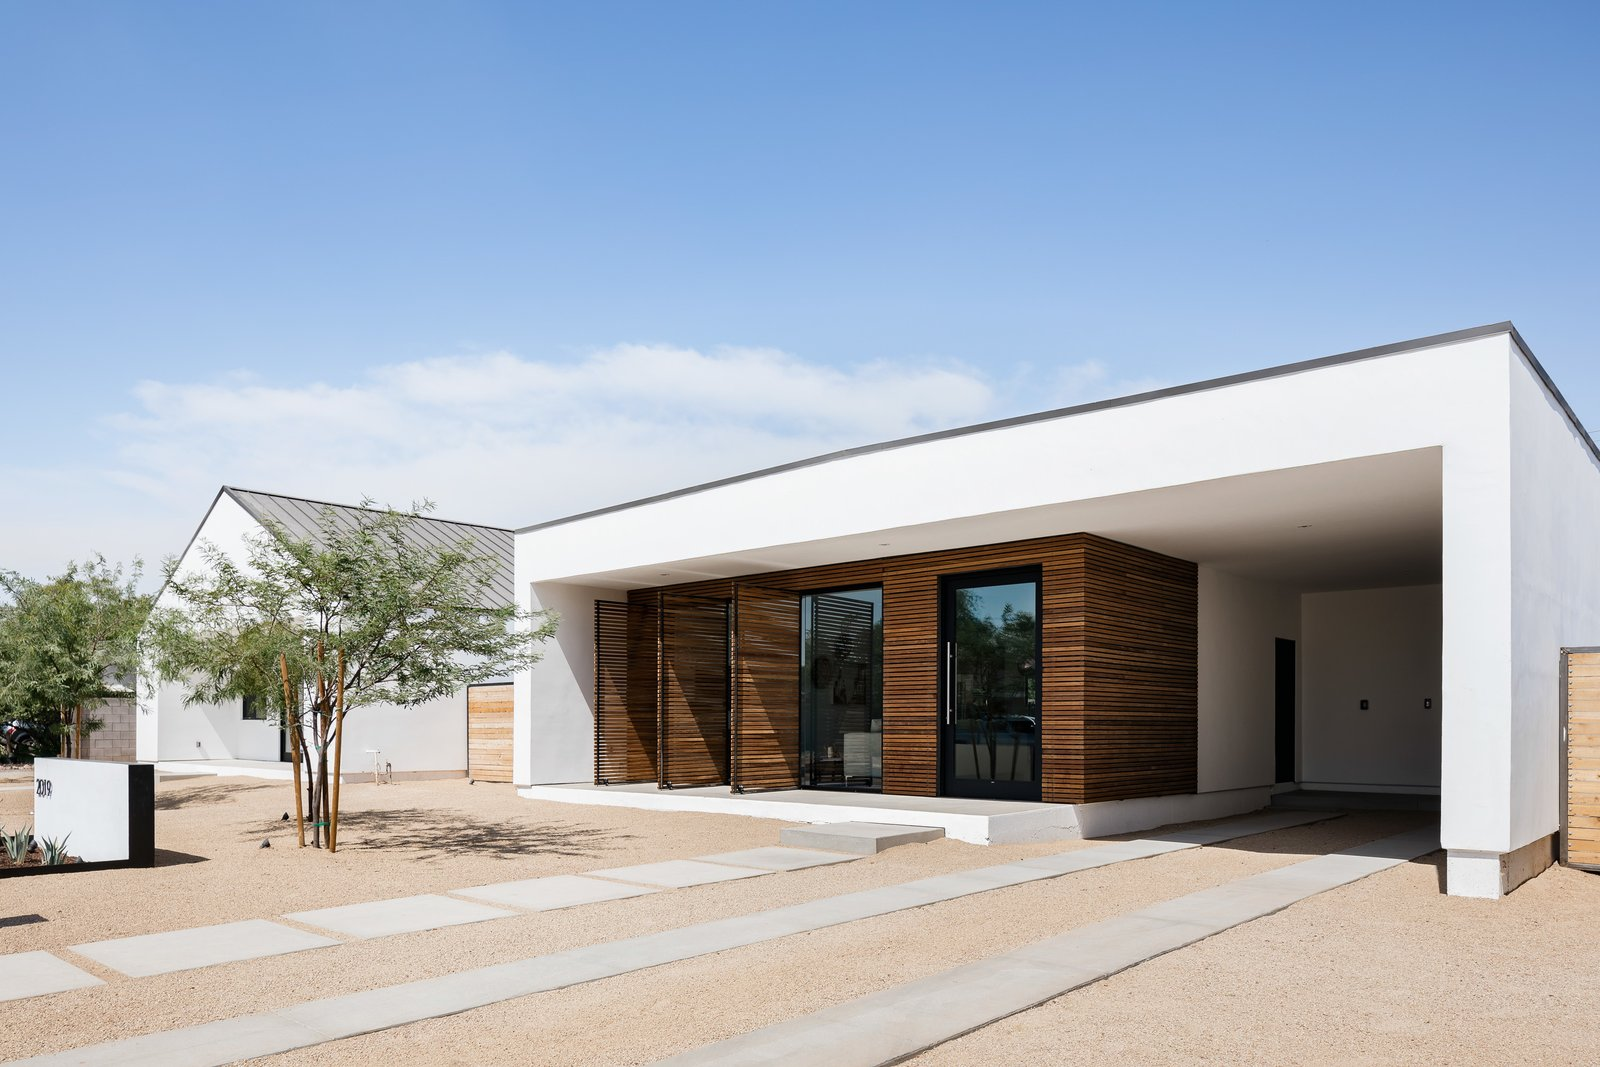 In arizona a modern cube and tumbledown 1930s shack make an unlikely couple dwell